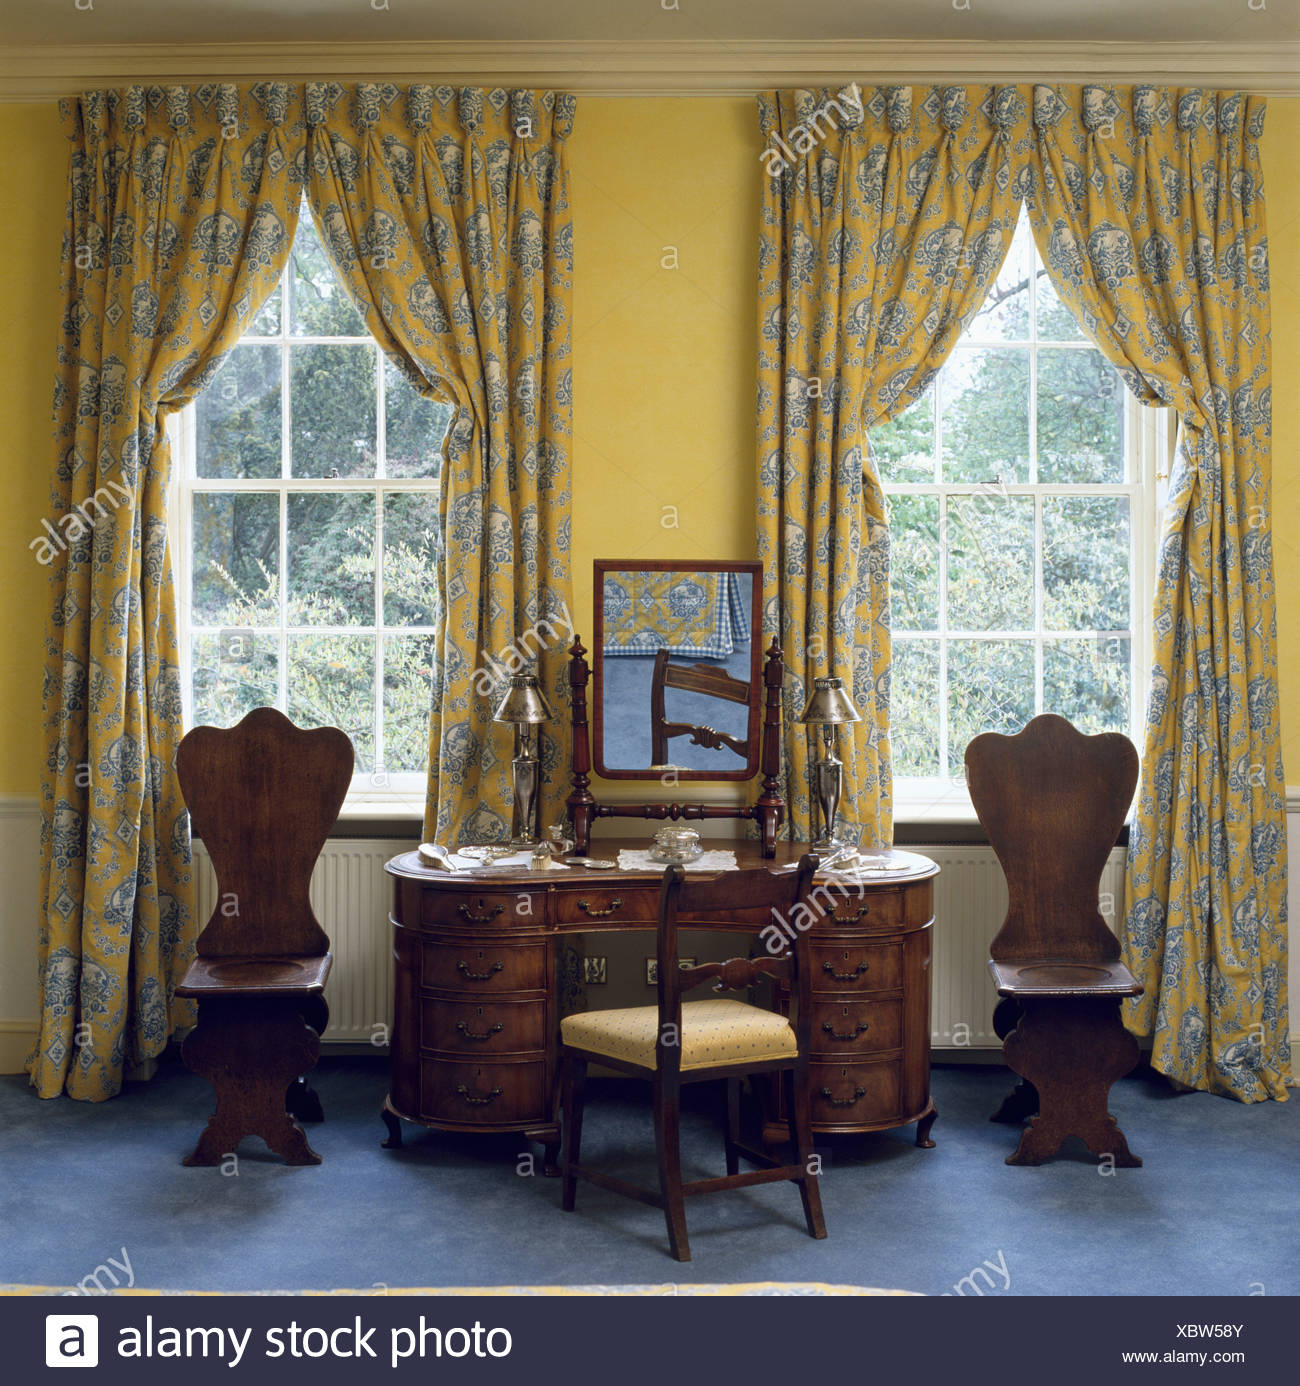 Blue and yellow patterned curtains at windows in bedroom with antique wooden chairs on either side of dressing table